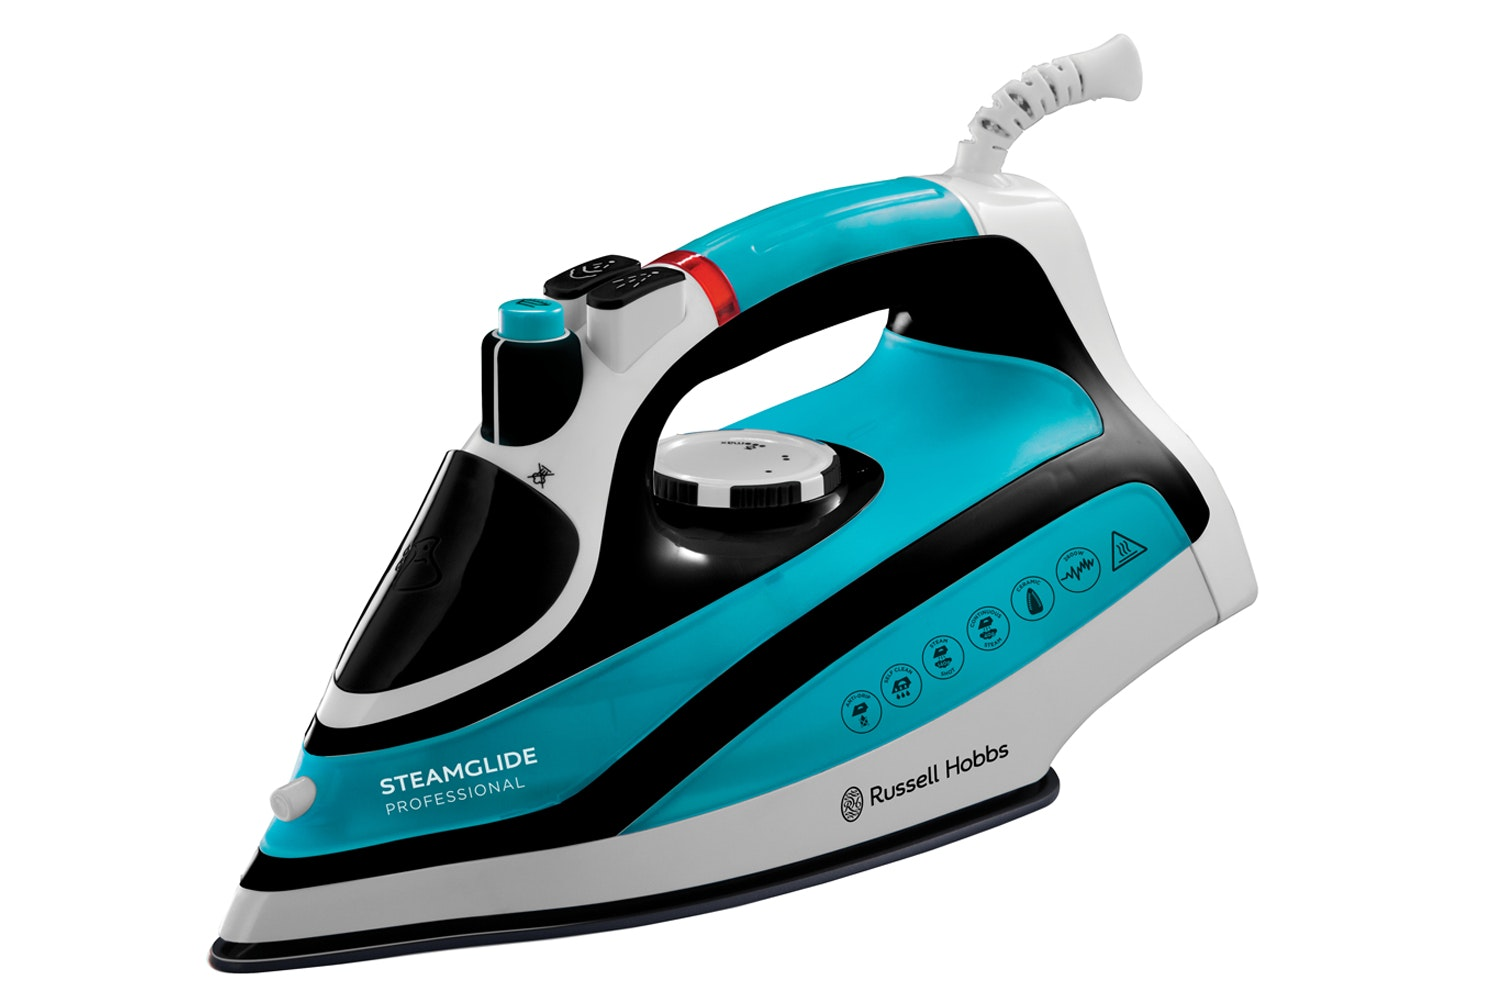 Russell Hobbs Steamglide 2600W  Iron